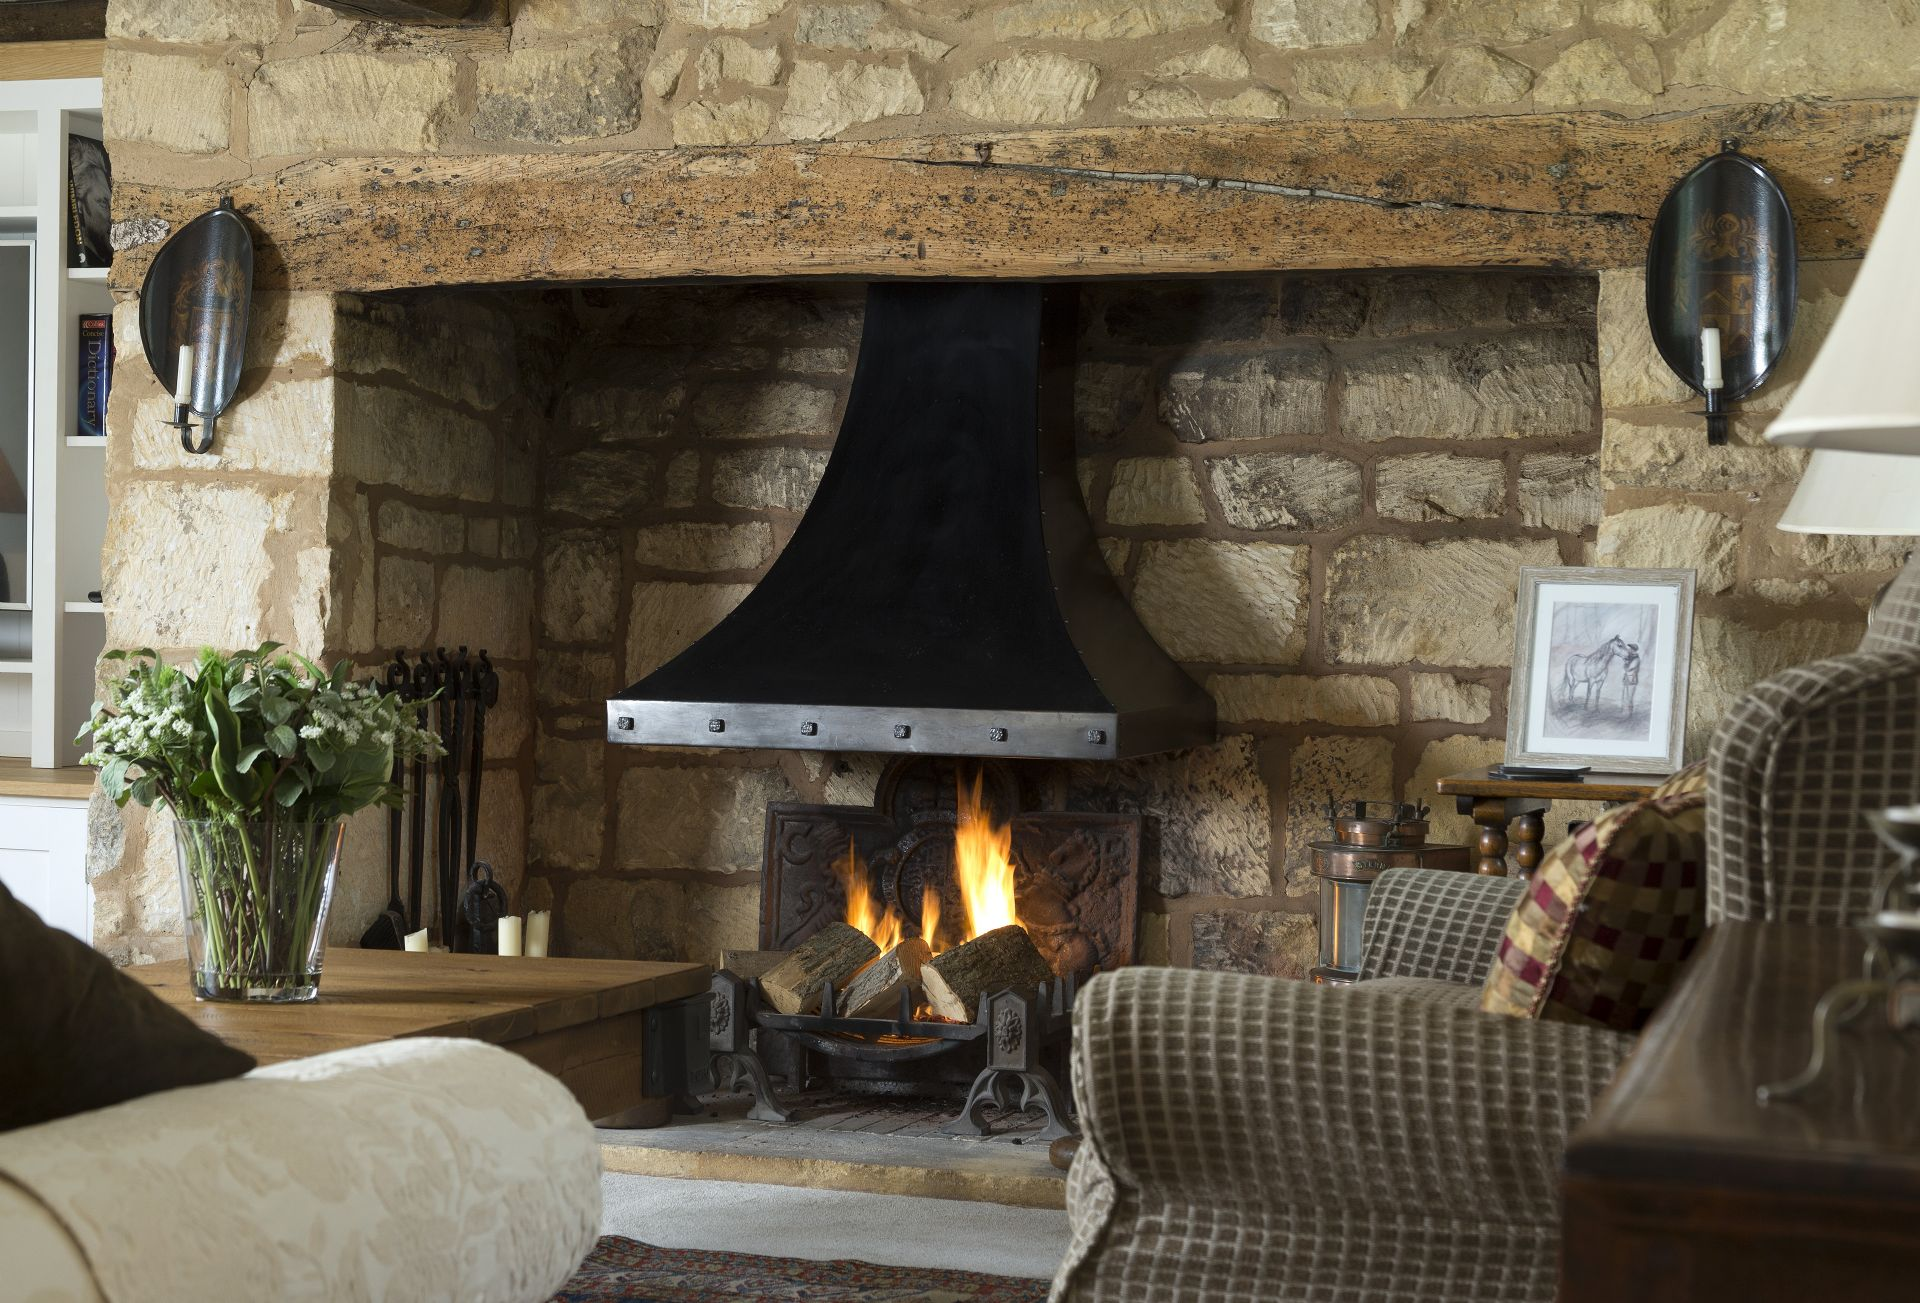 Ground floor: Large inglenook fireplace with open fire